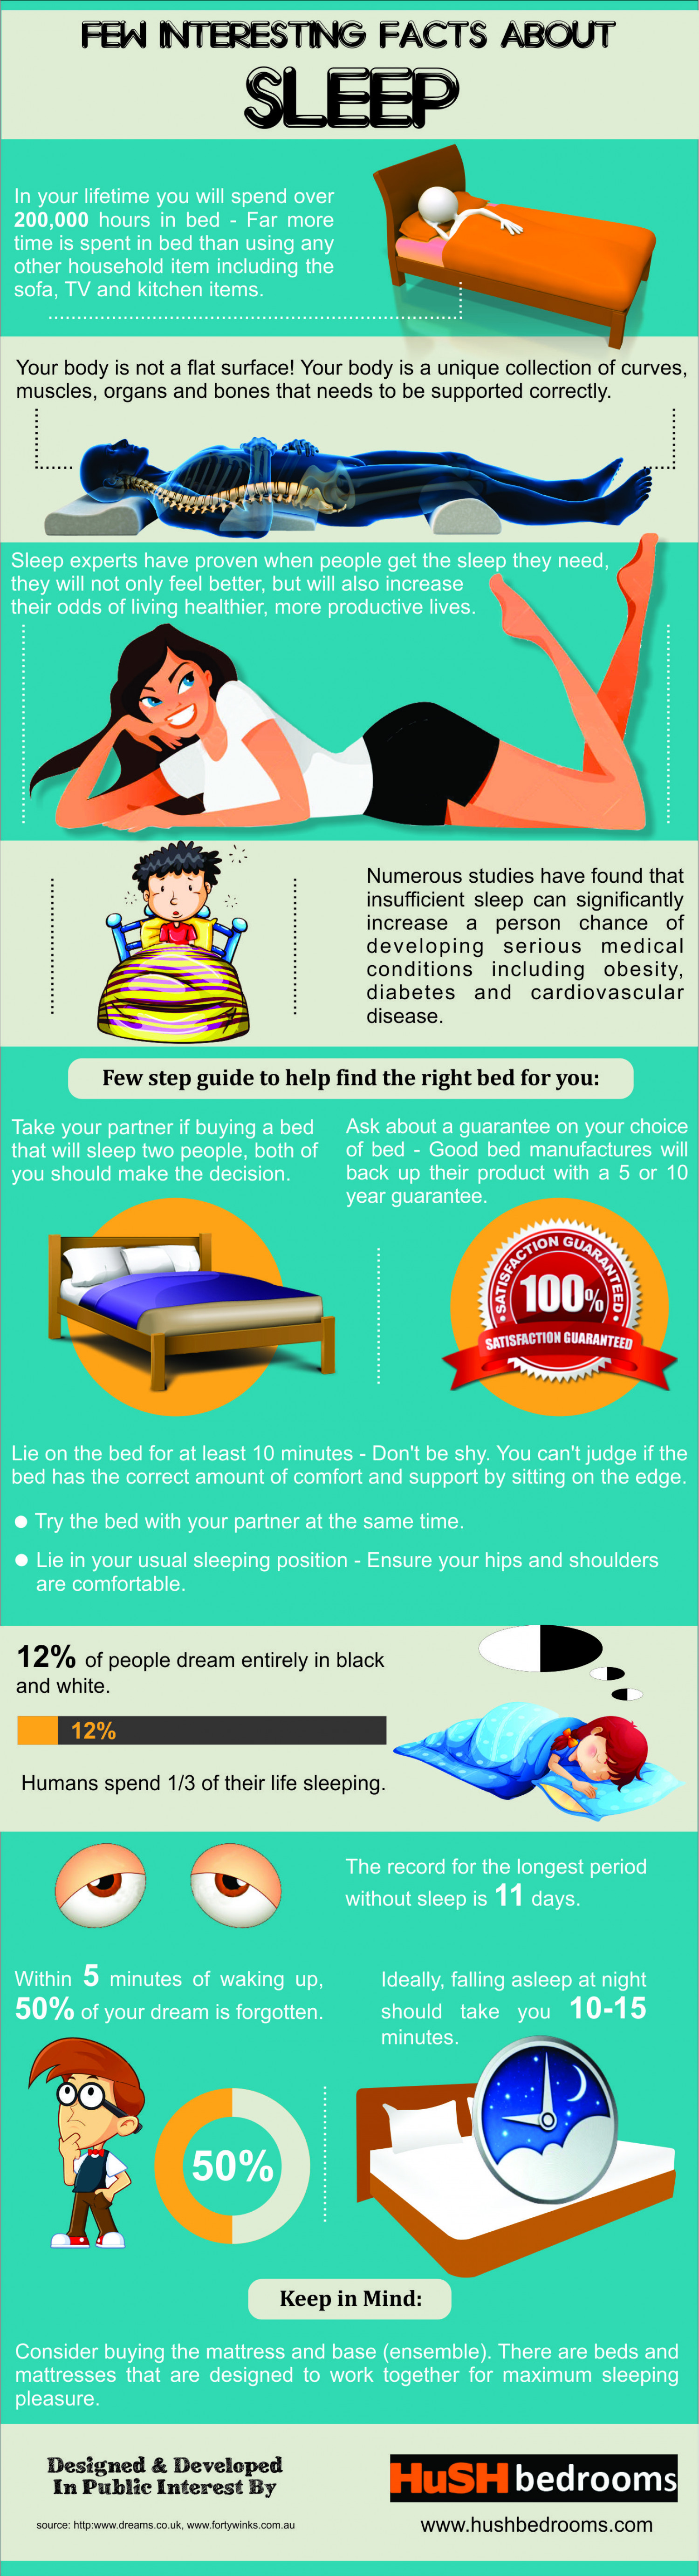 Few Interesting Facts About Sleep Infographic